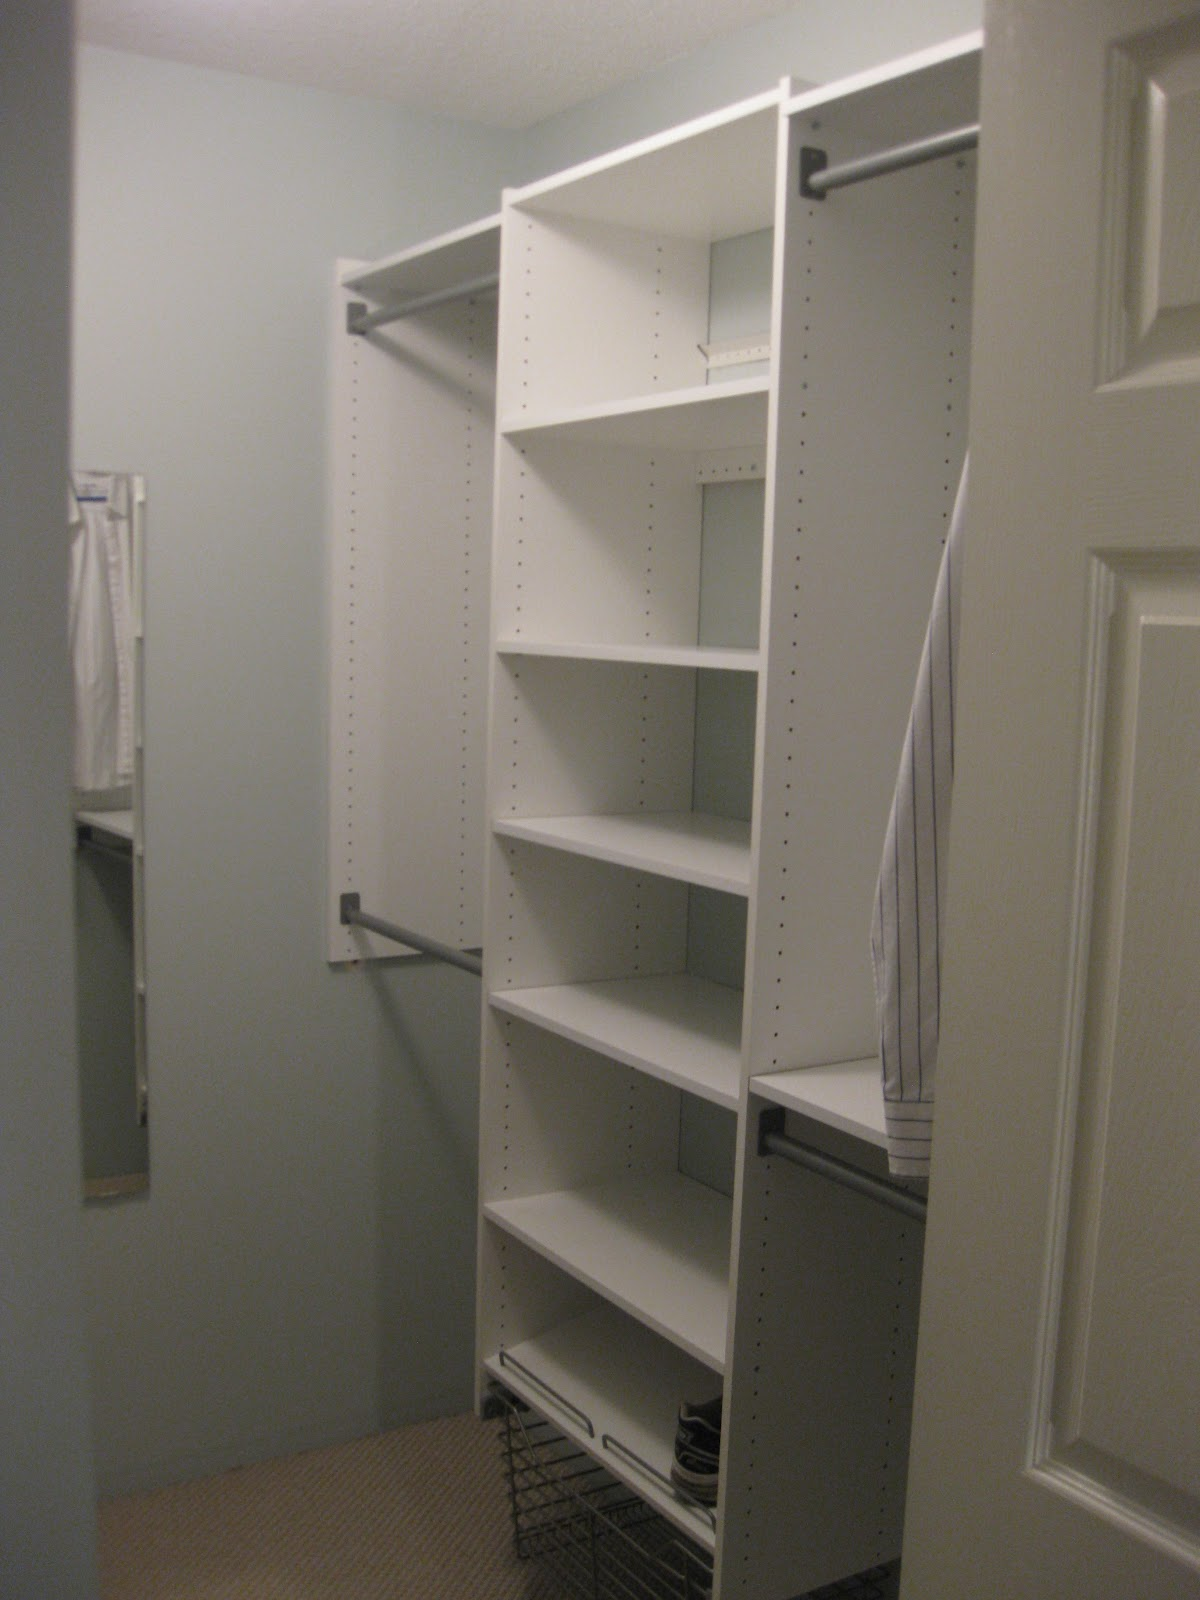 get van breugel design martha stewart closet organizer review